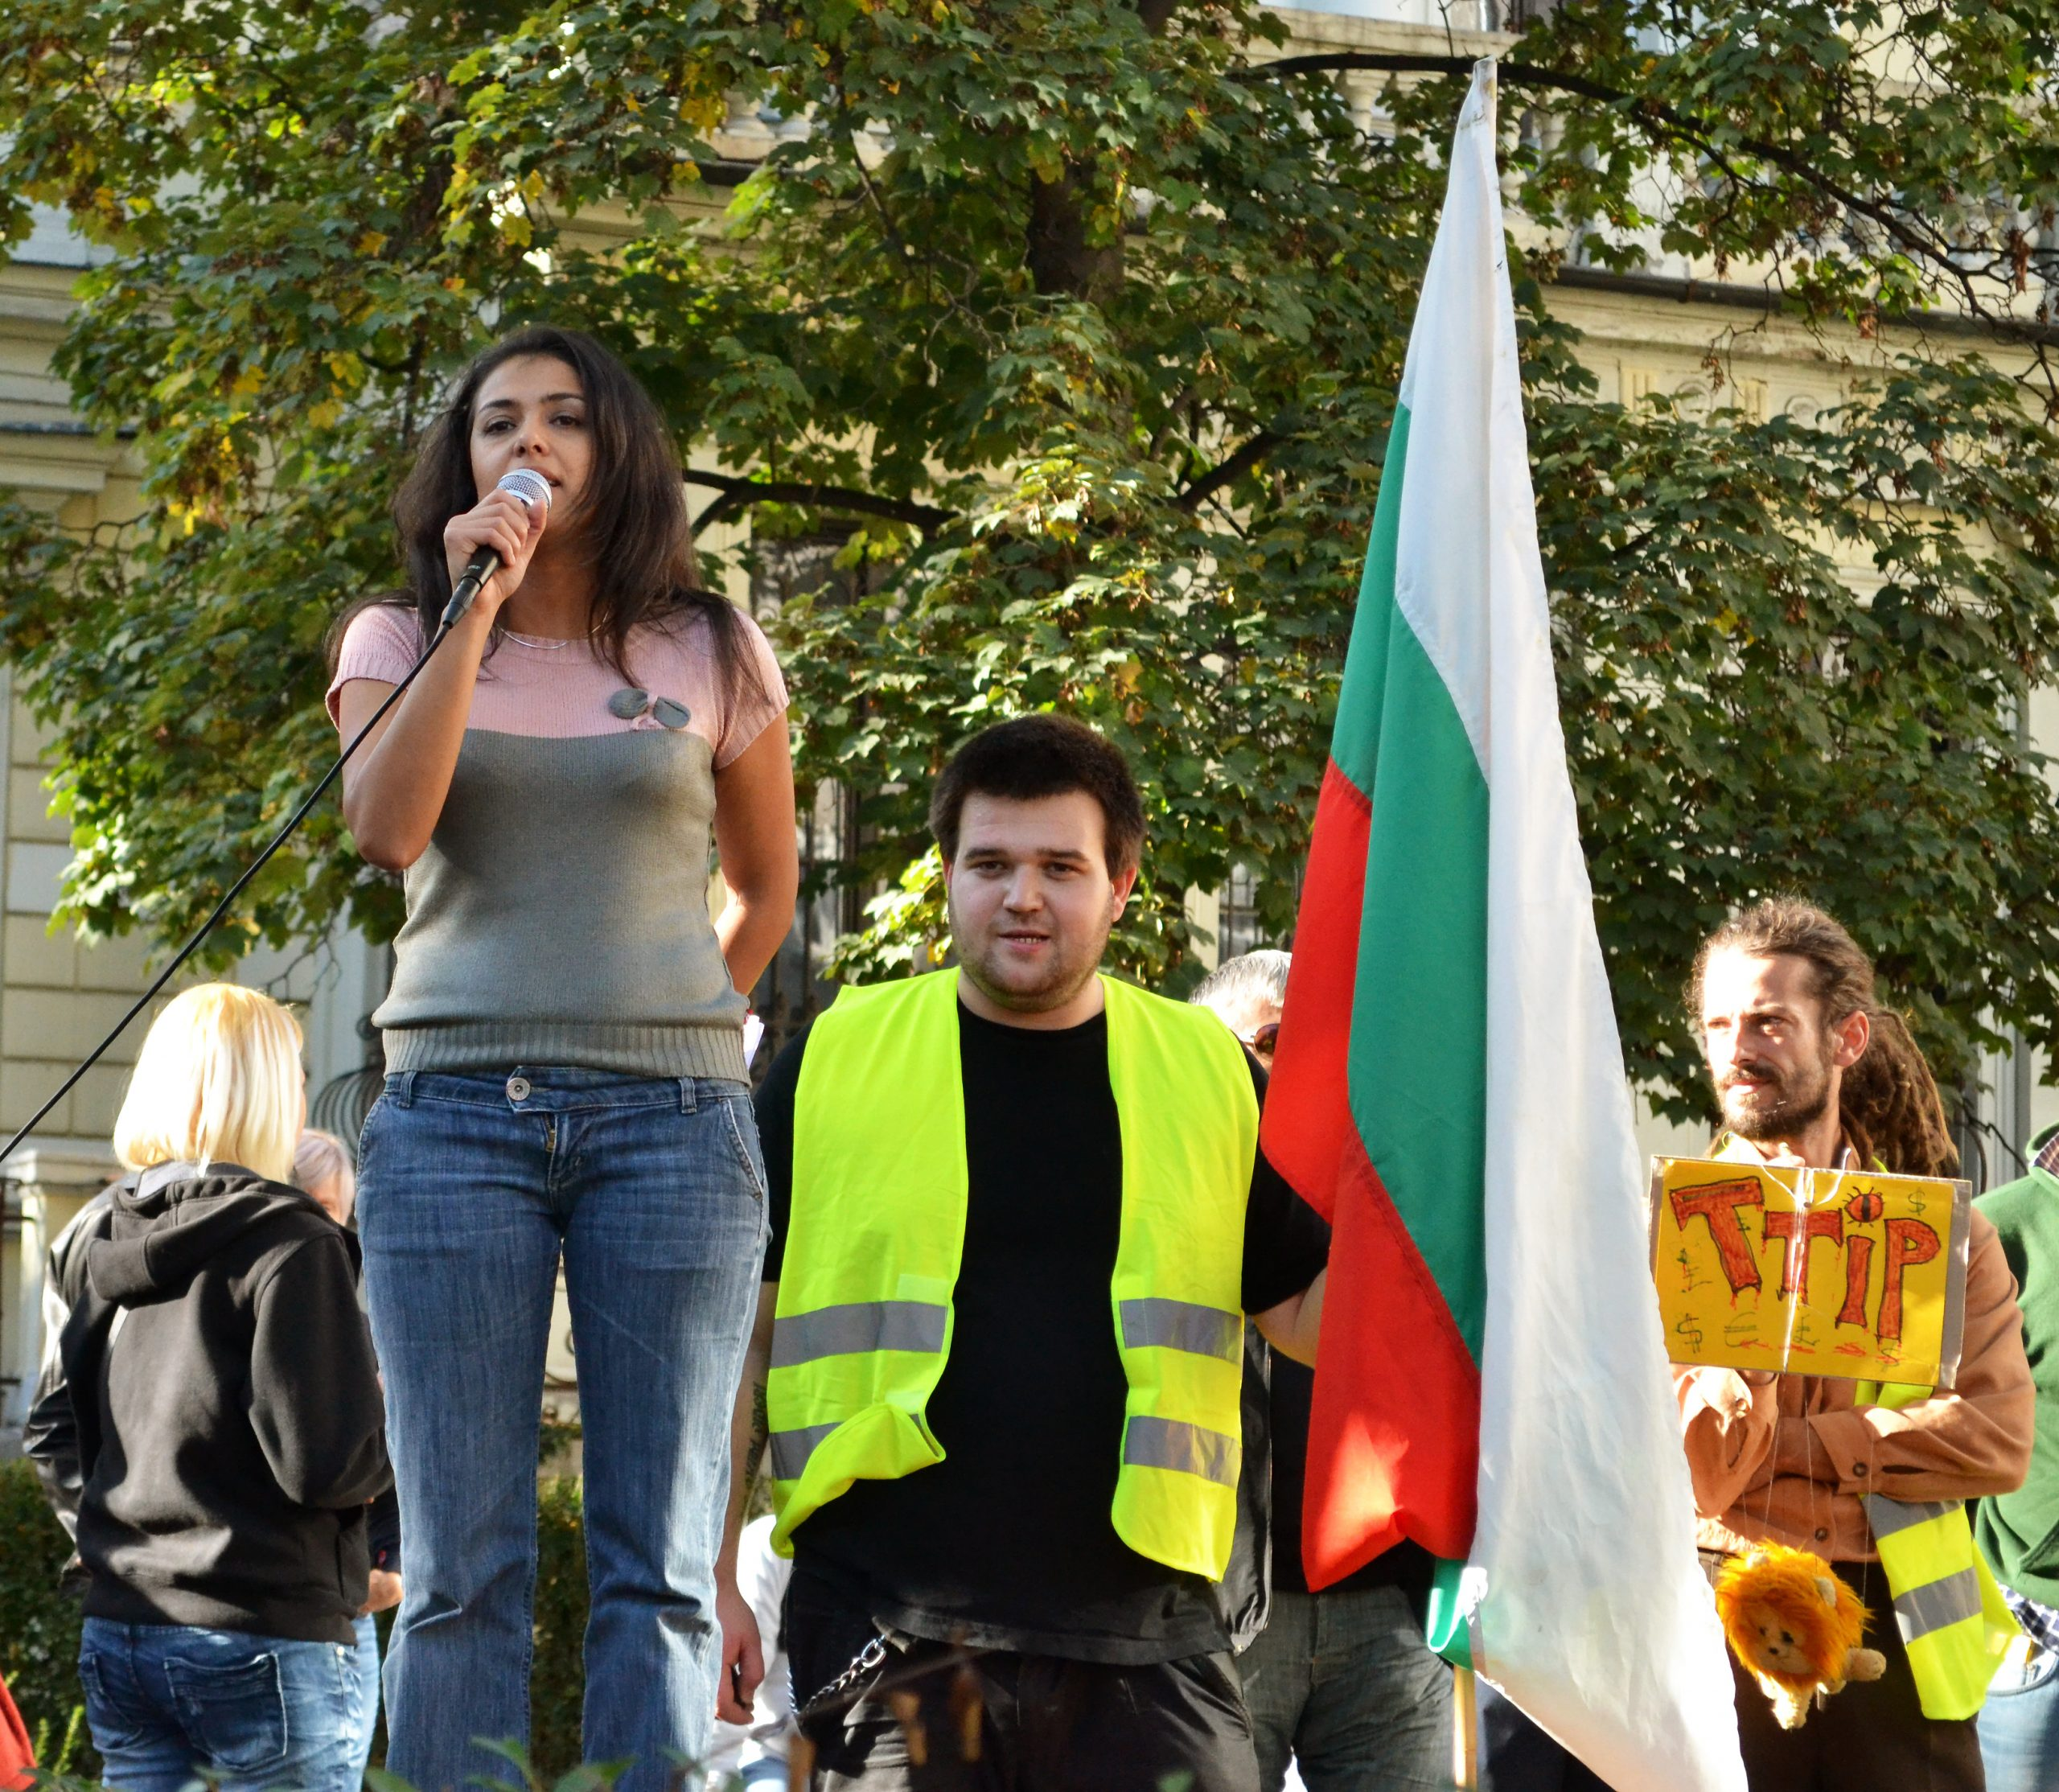 Bulgarians rise up against the Transatlantic Trade and Investment Partnership (TTIP) and shale gas